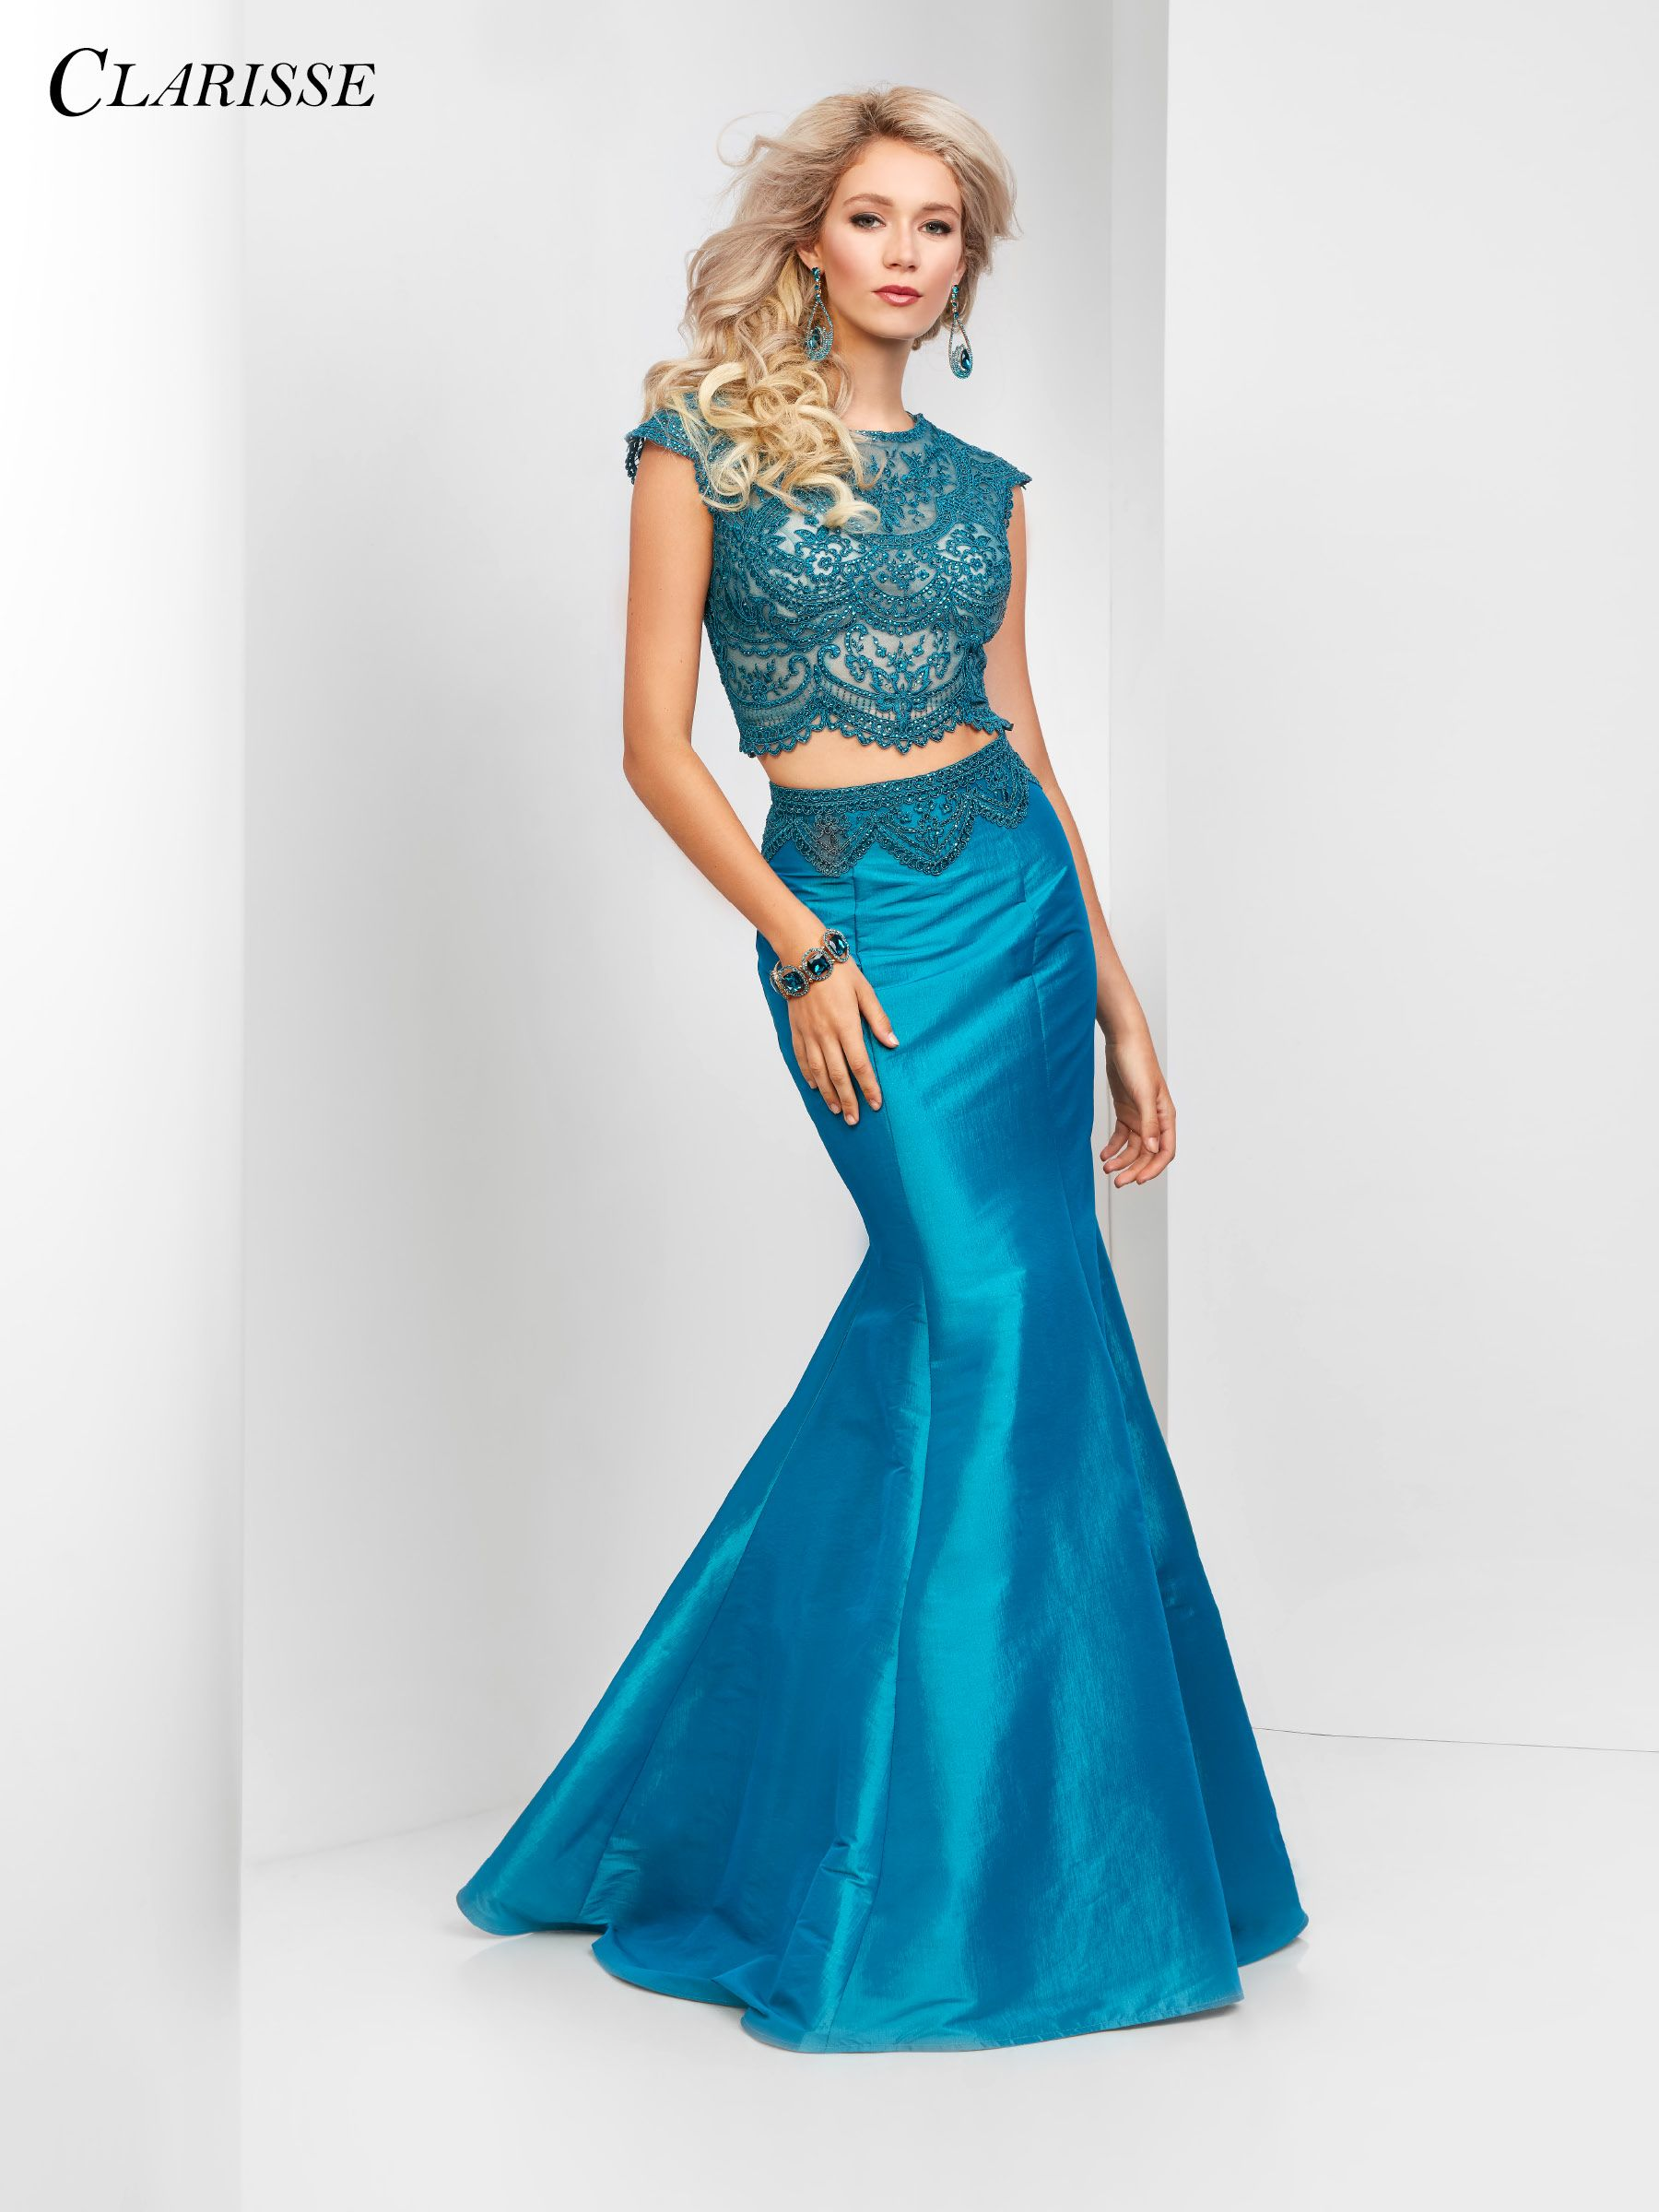 Clarisse Prom 2018 dress 3148. Look elegant in this lace two piece ...